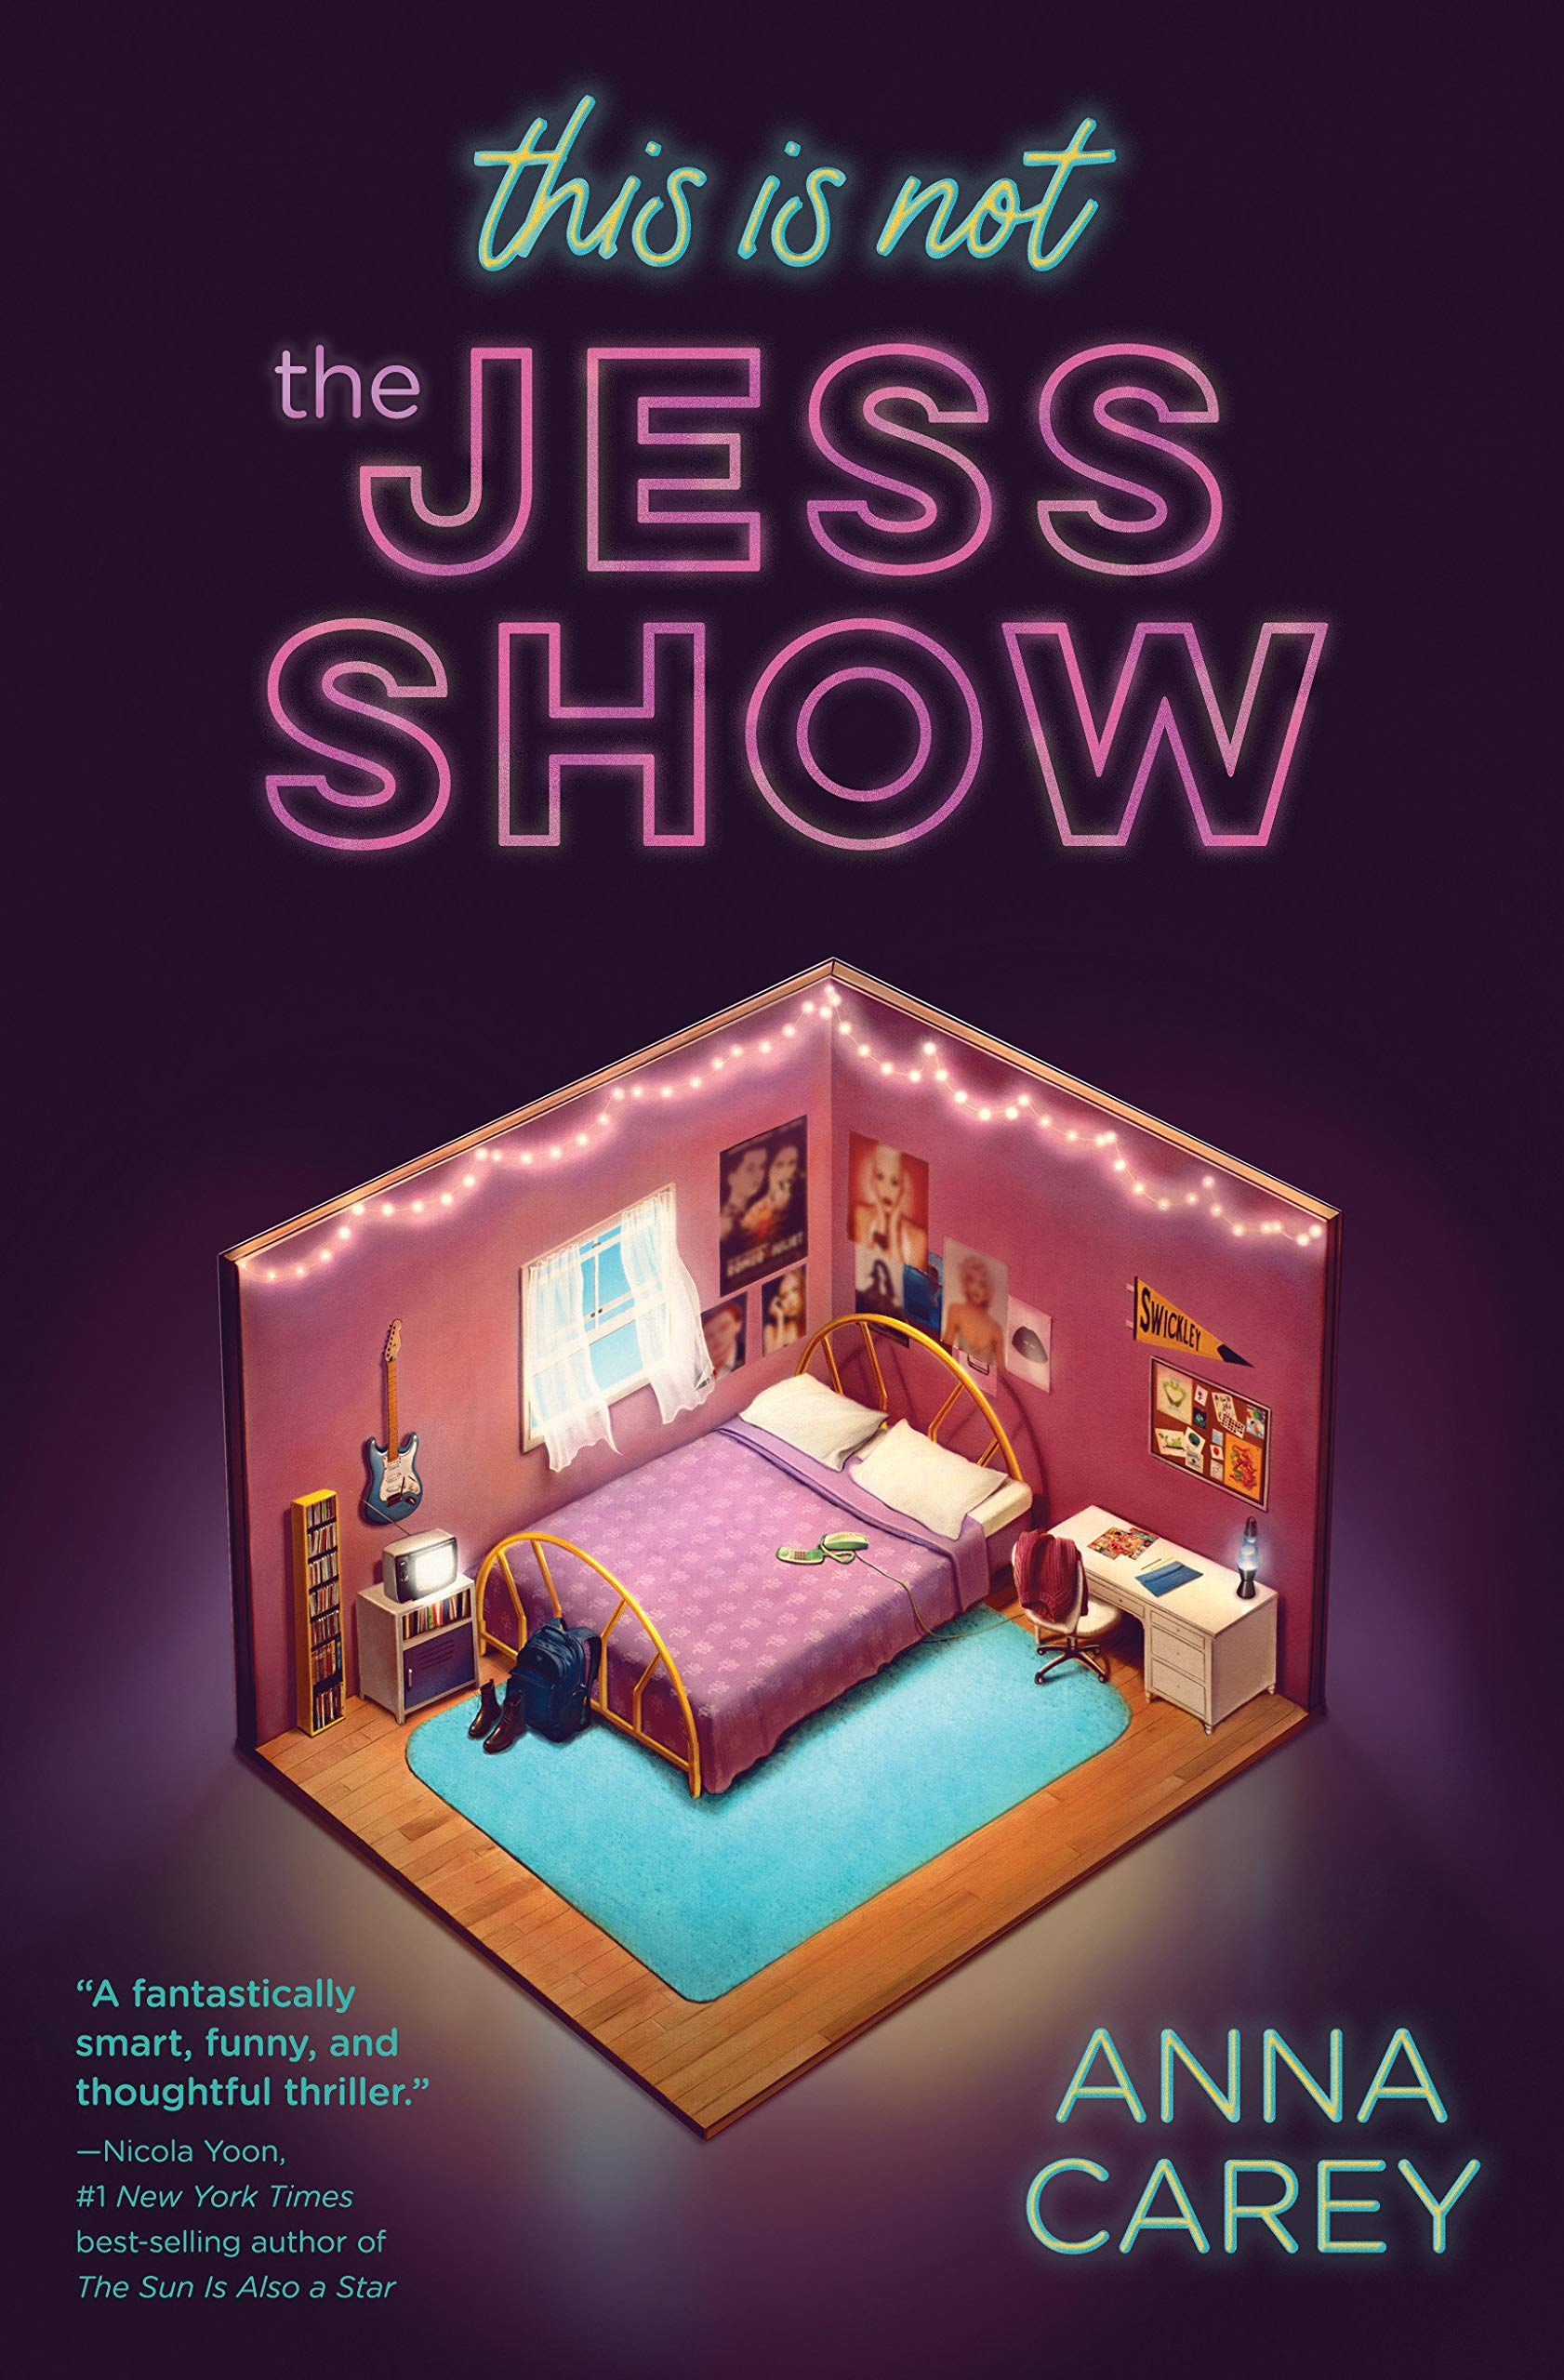 Amazon.com: This Is Not the Jess Show (9781683691976): Carey, Anna: Books